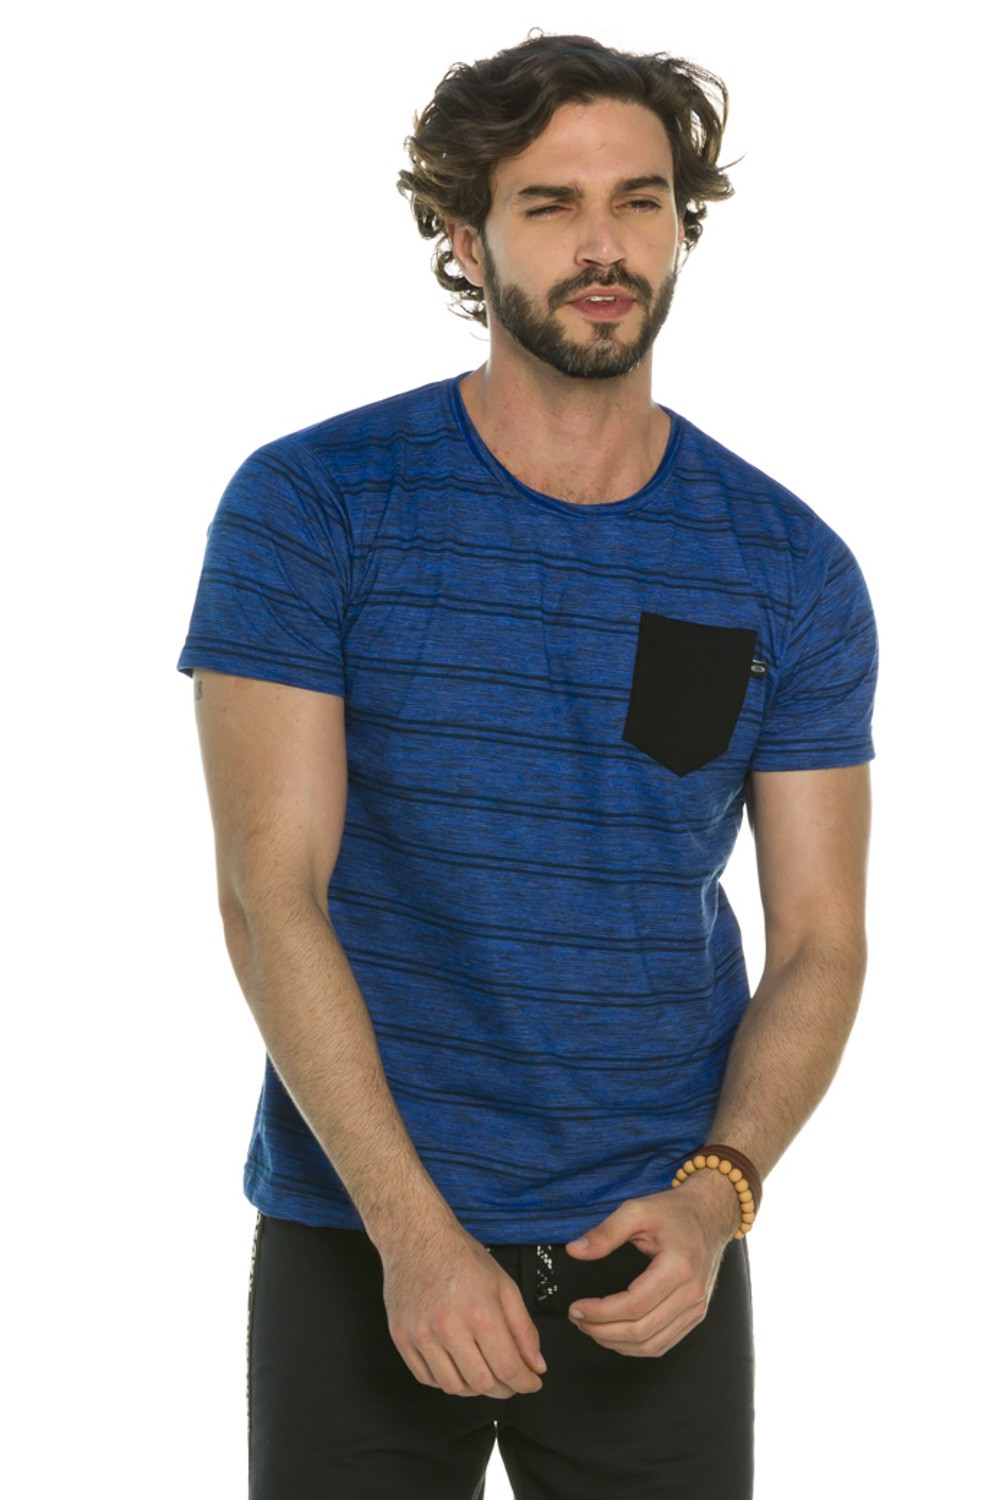 Camiseta Decote Redondo Stripes